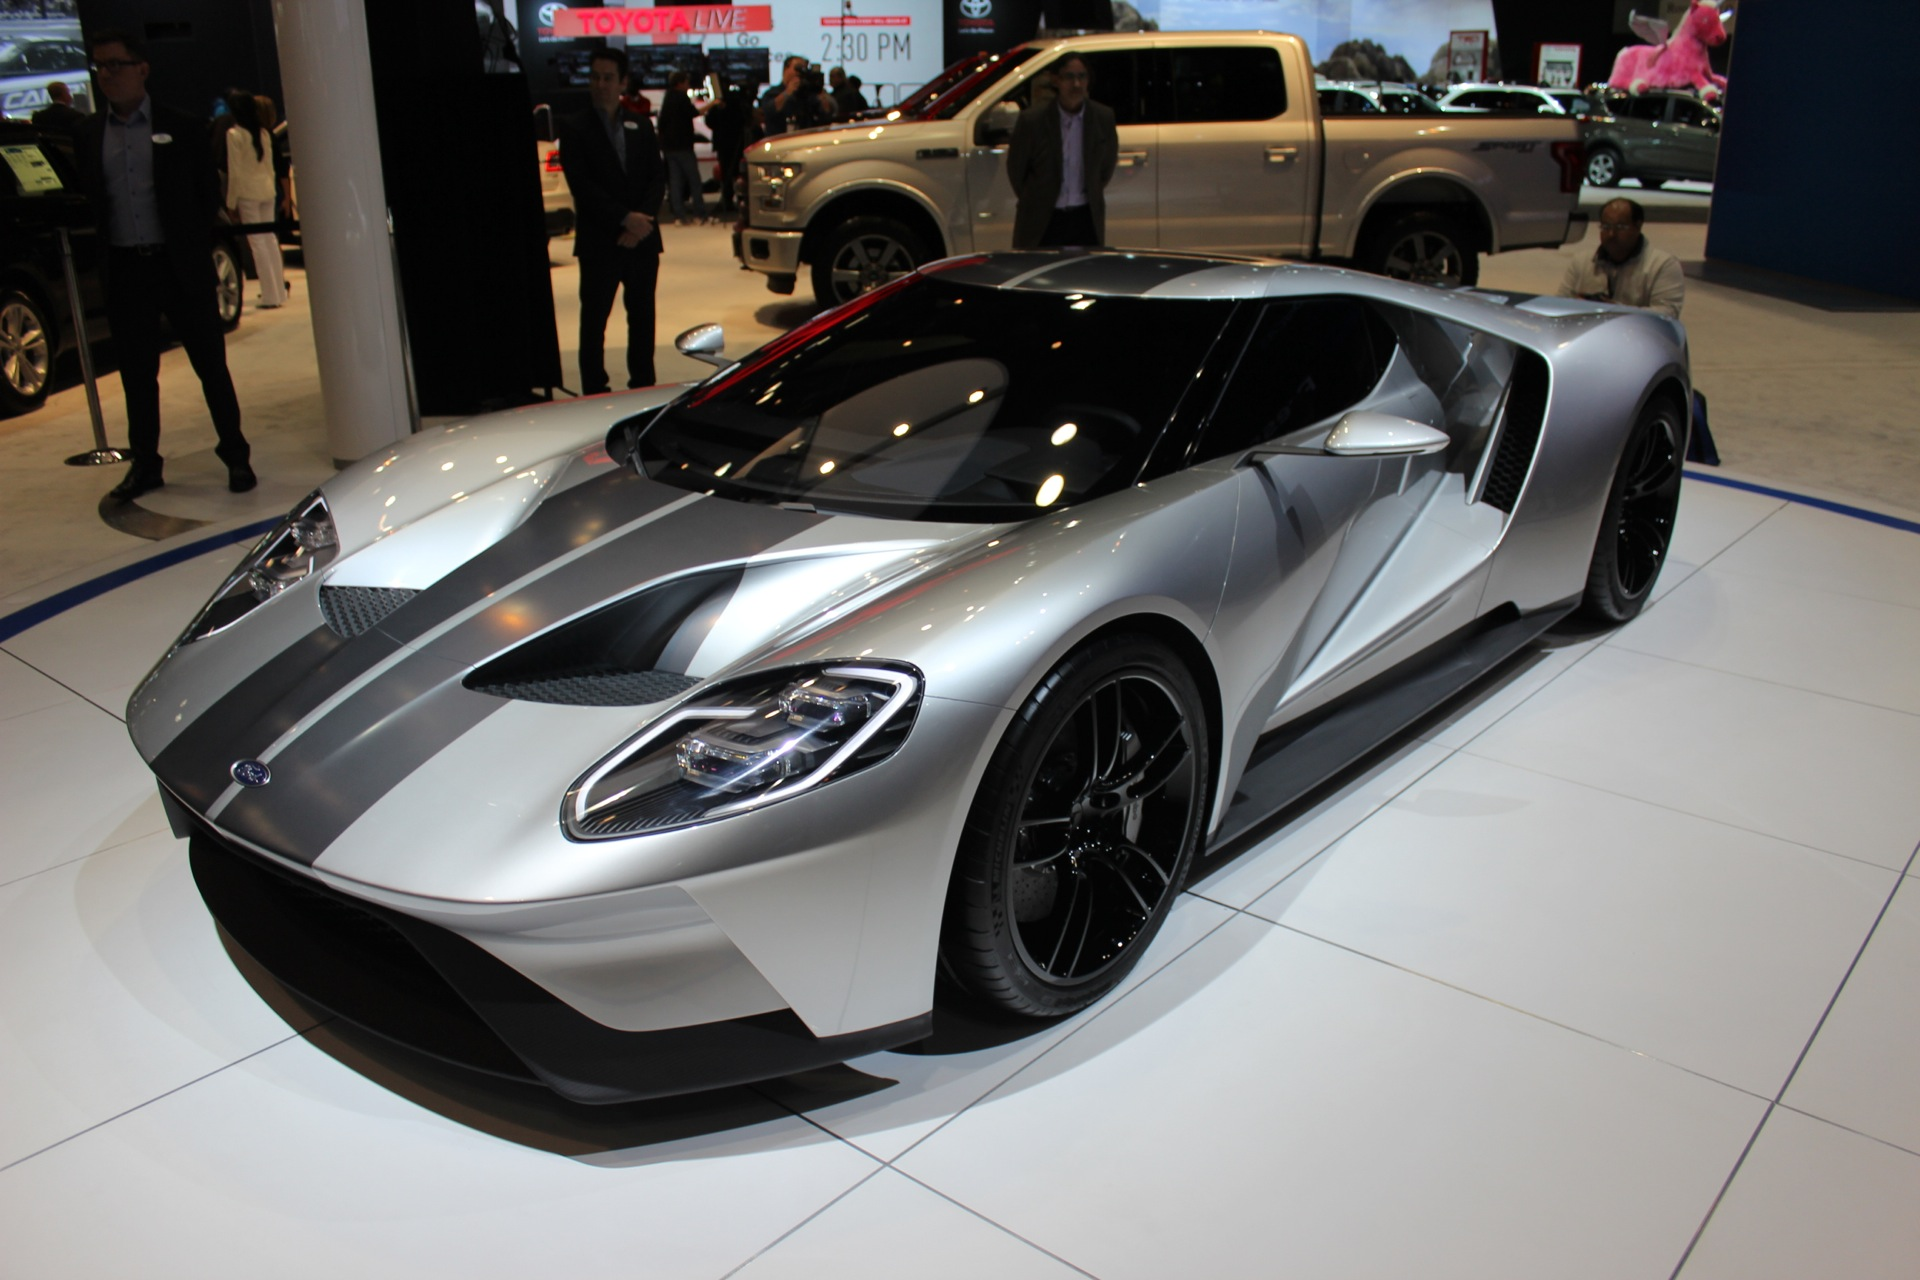 The Ford GT Will Cost $400,000, Sell 250 Per Year